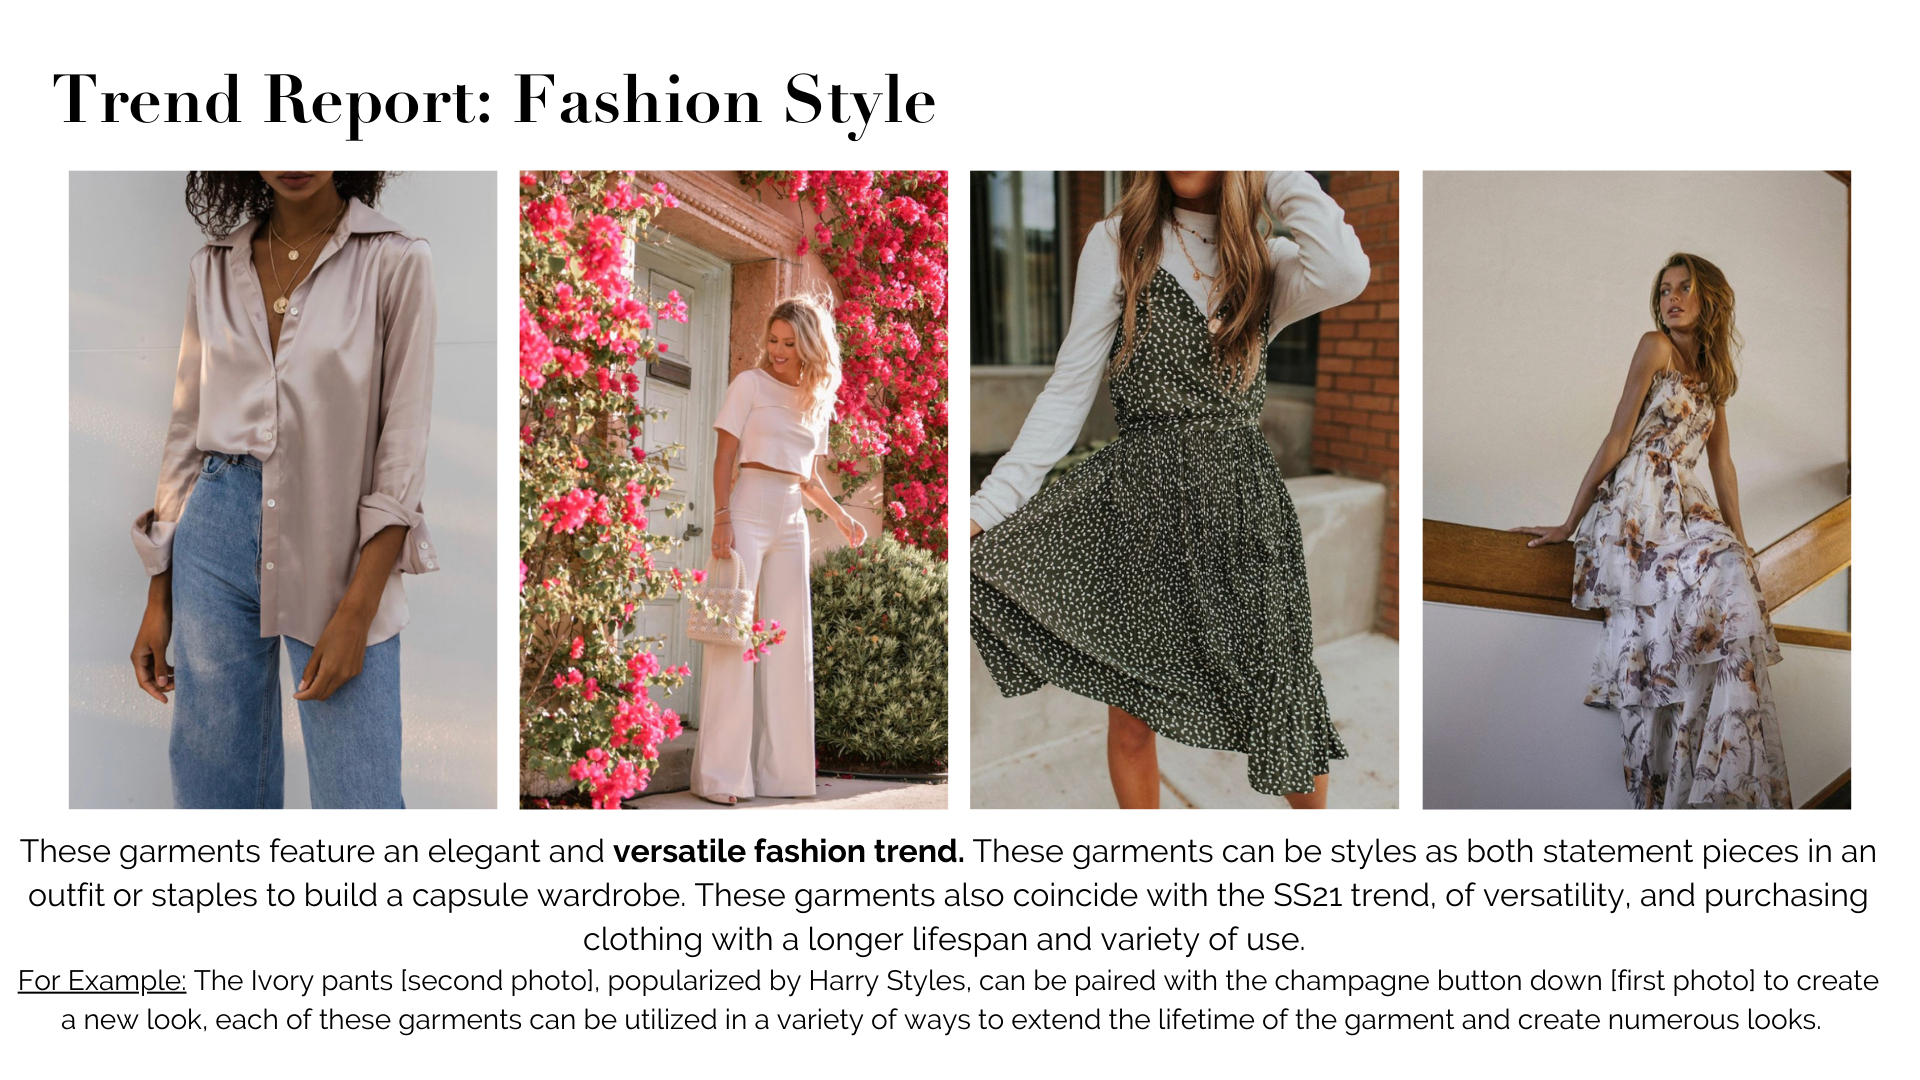 Trend Report: Fashion Style